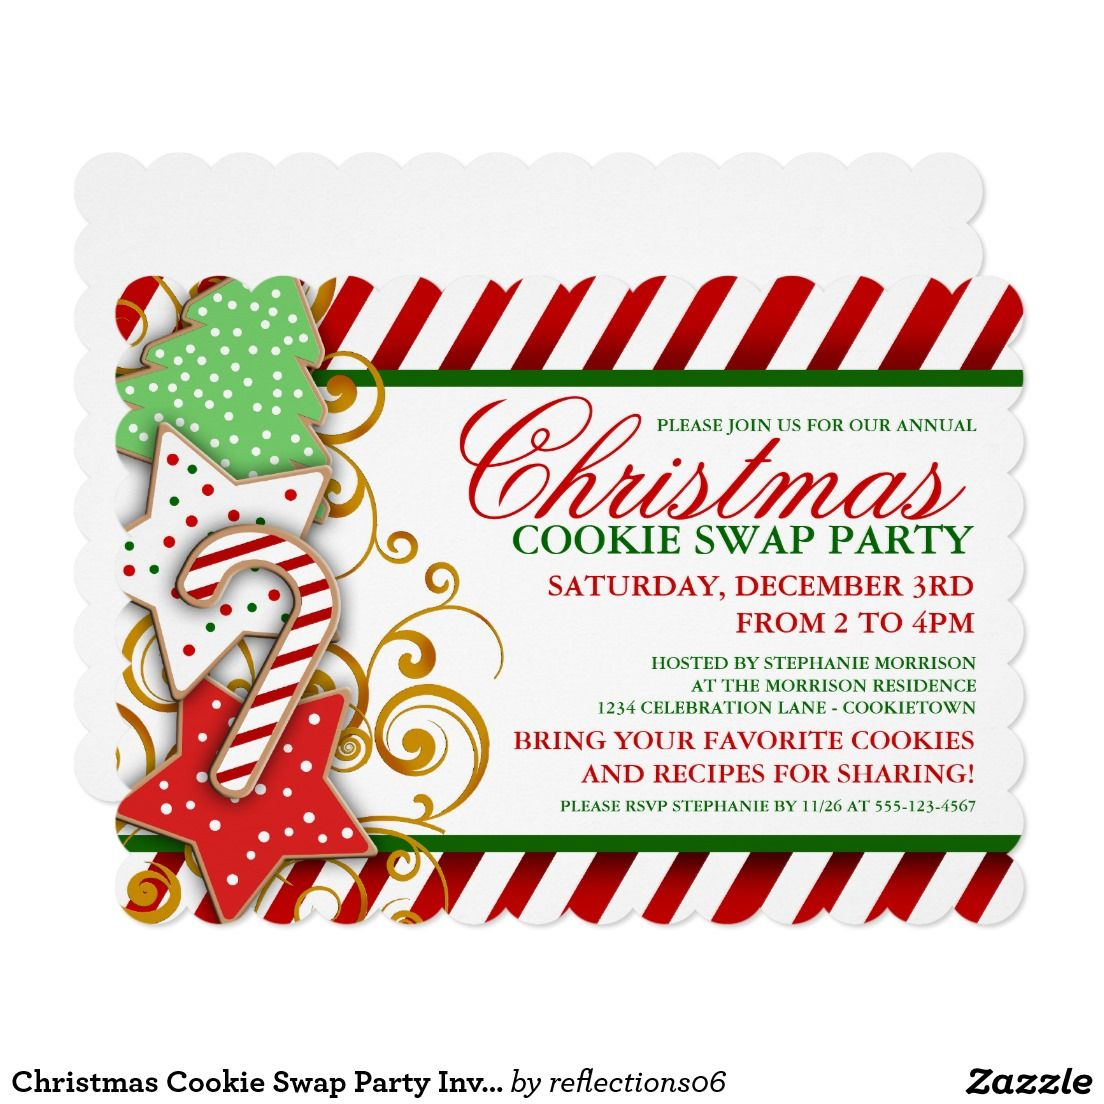 Christmas Cookie Swap Party Invitation | Christmas Party ...